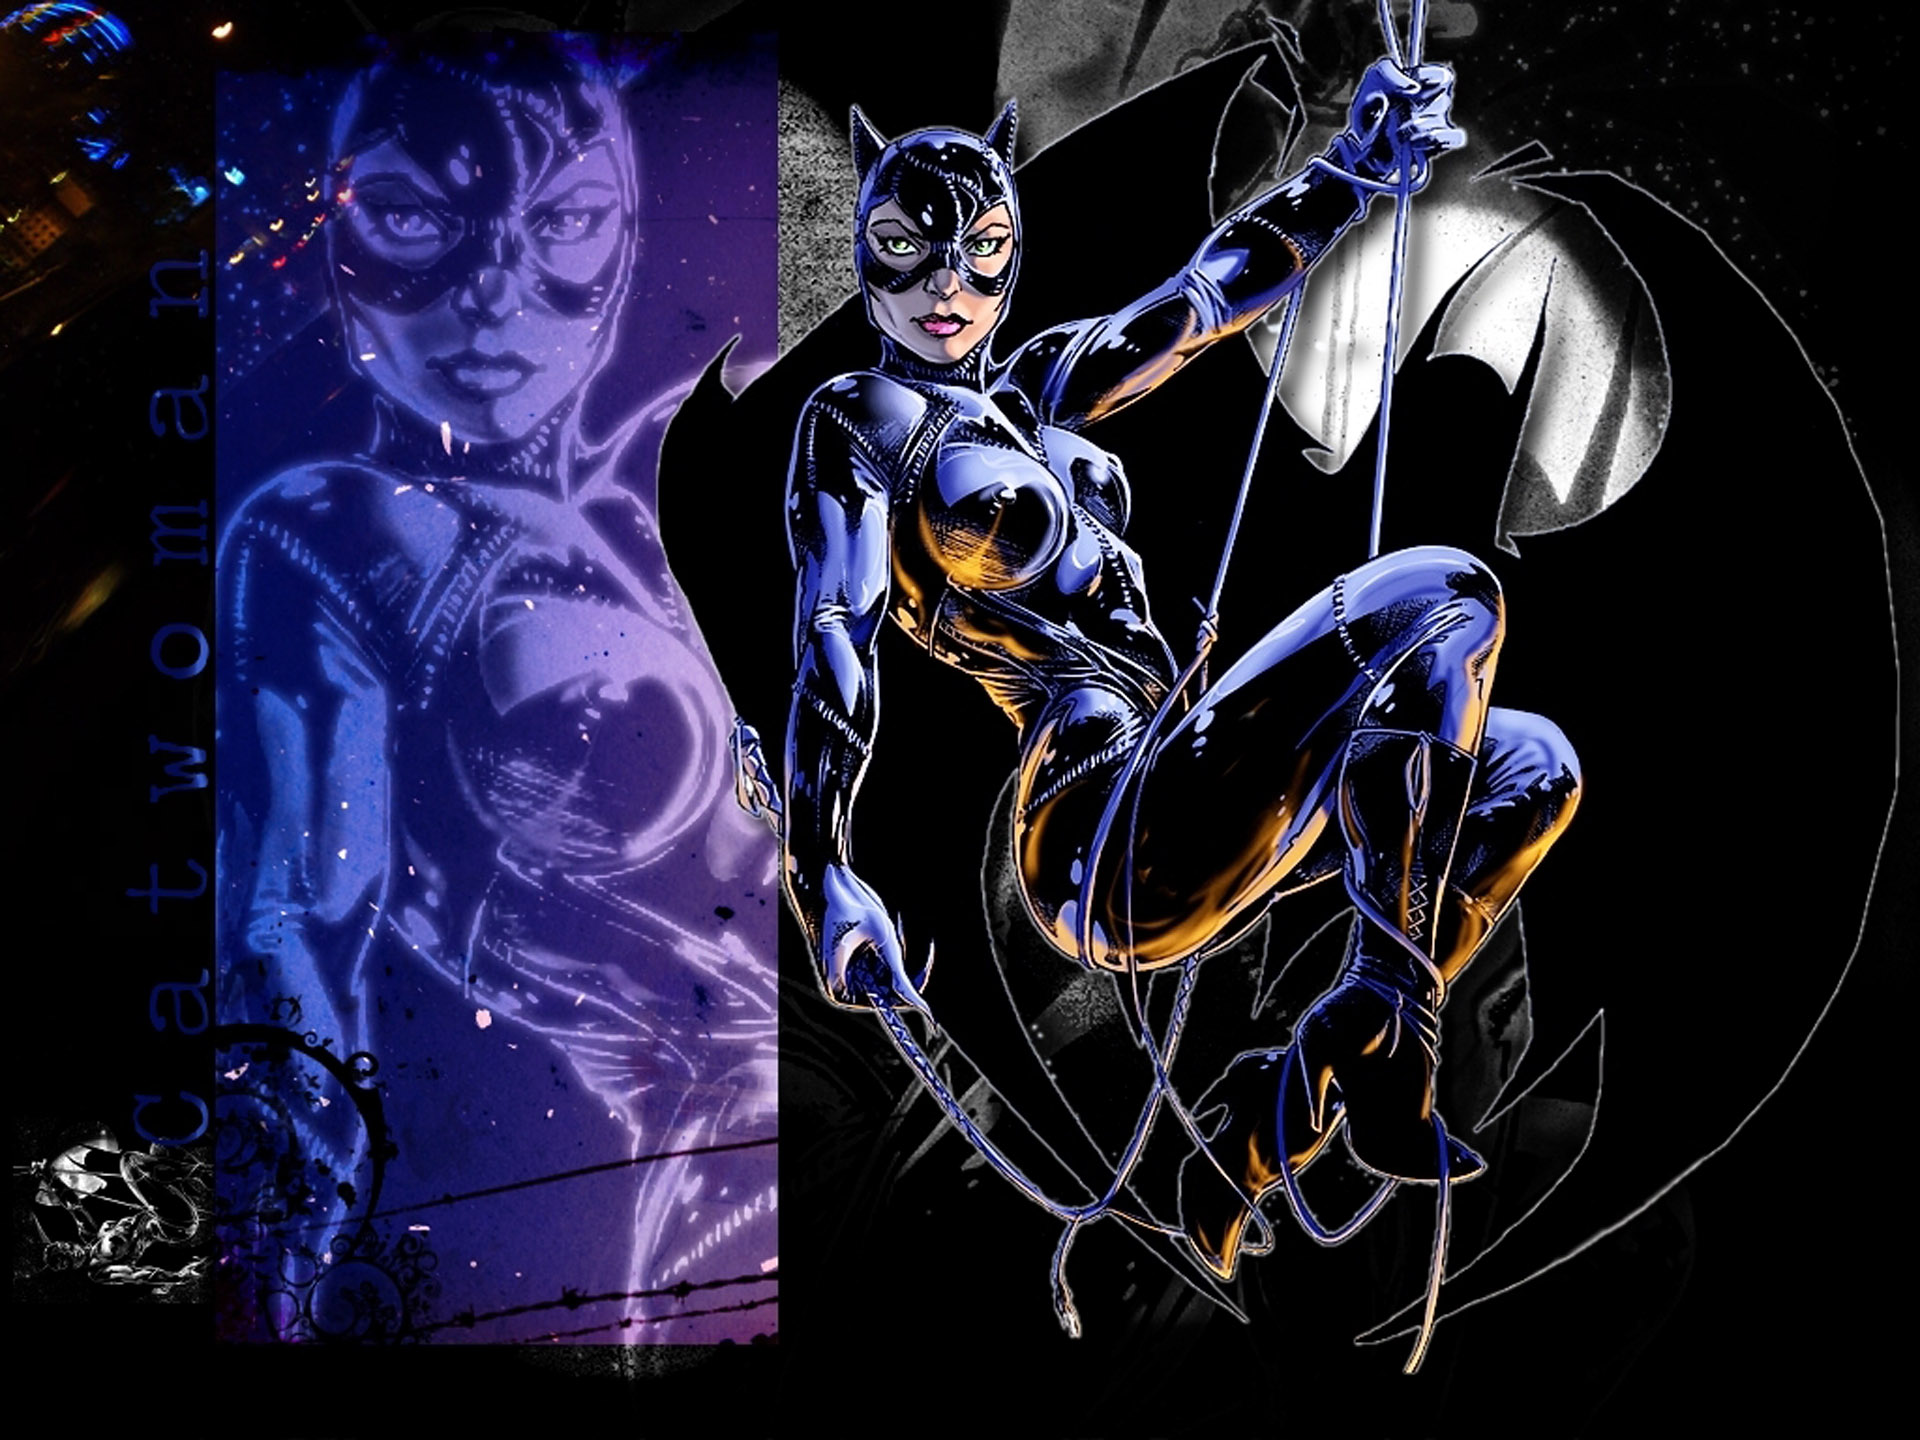 Catwoman Computer Wallpapers Desktop Backgrounds 1920x1440 ID 1920x1440